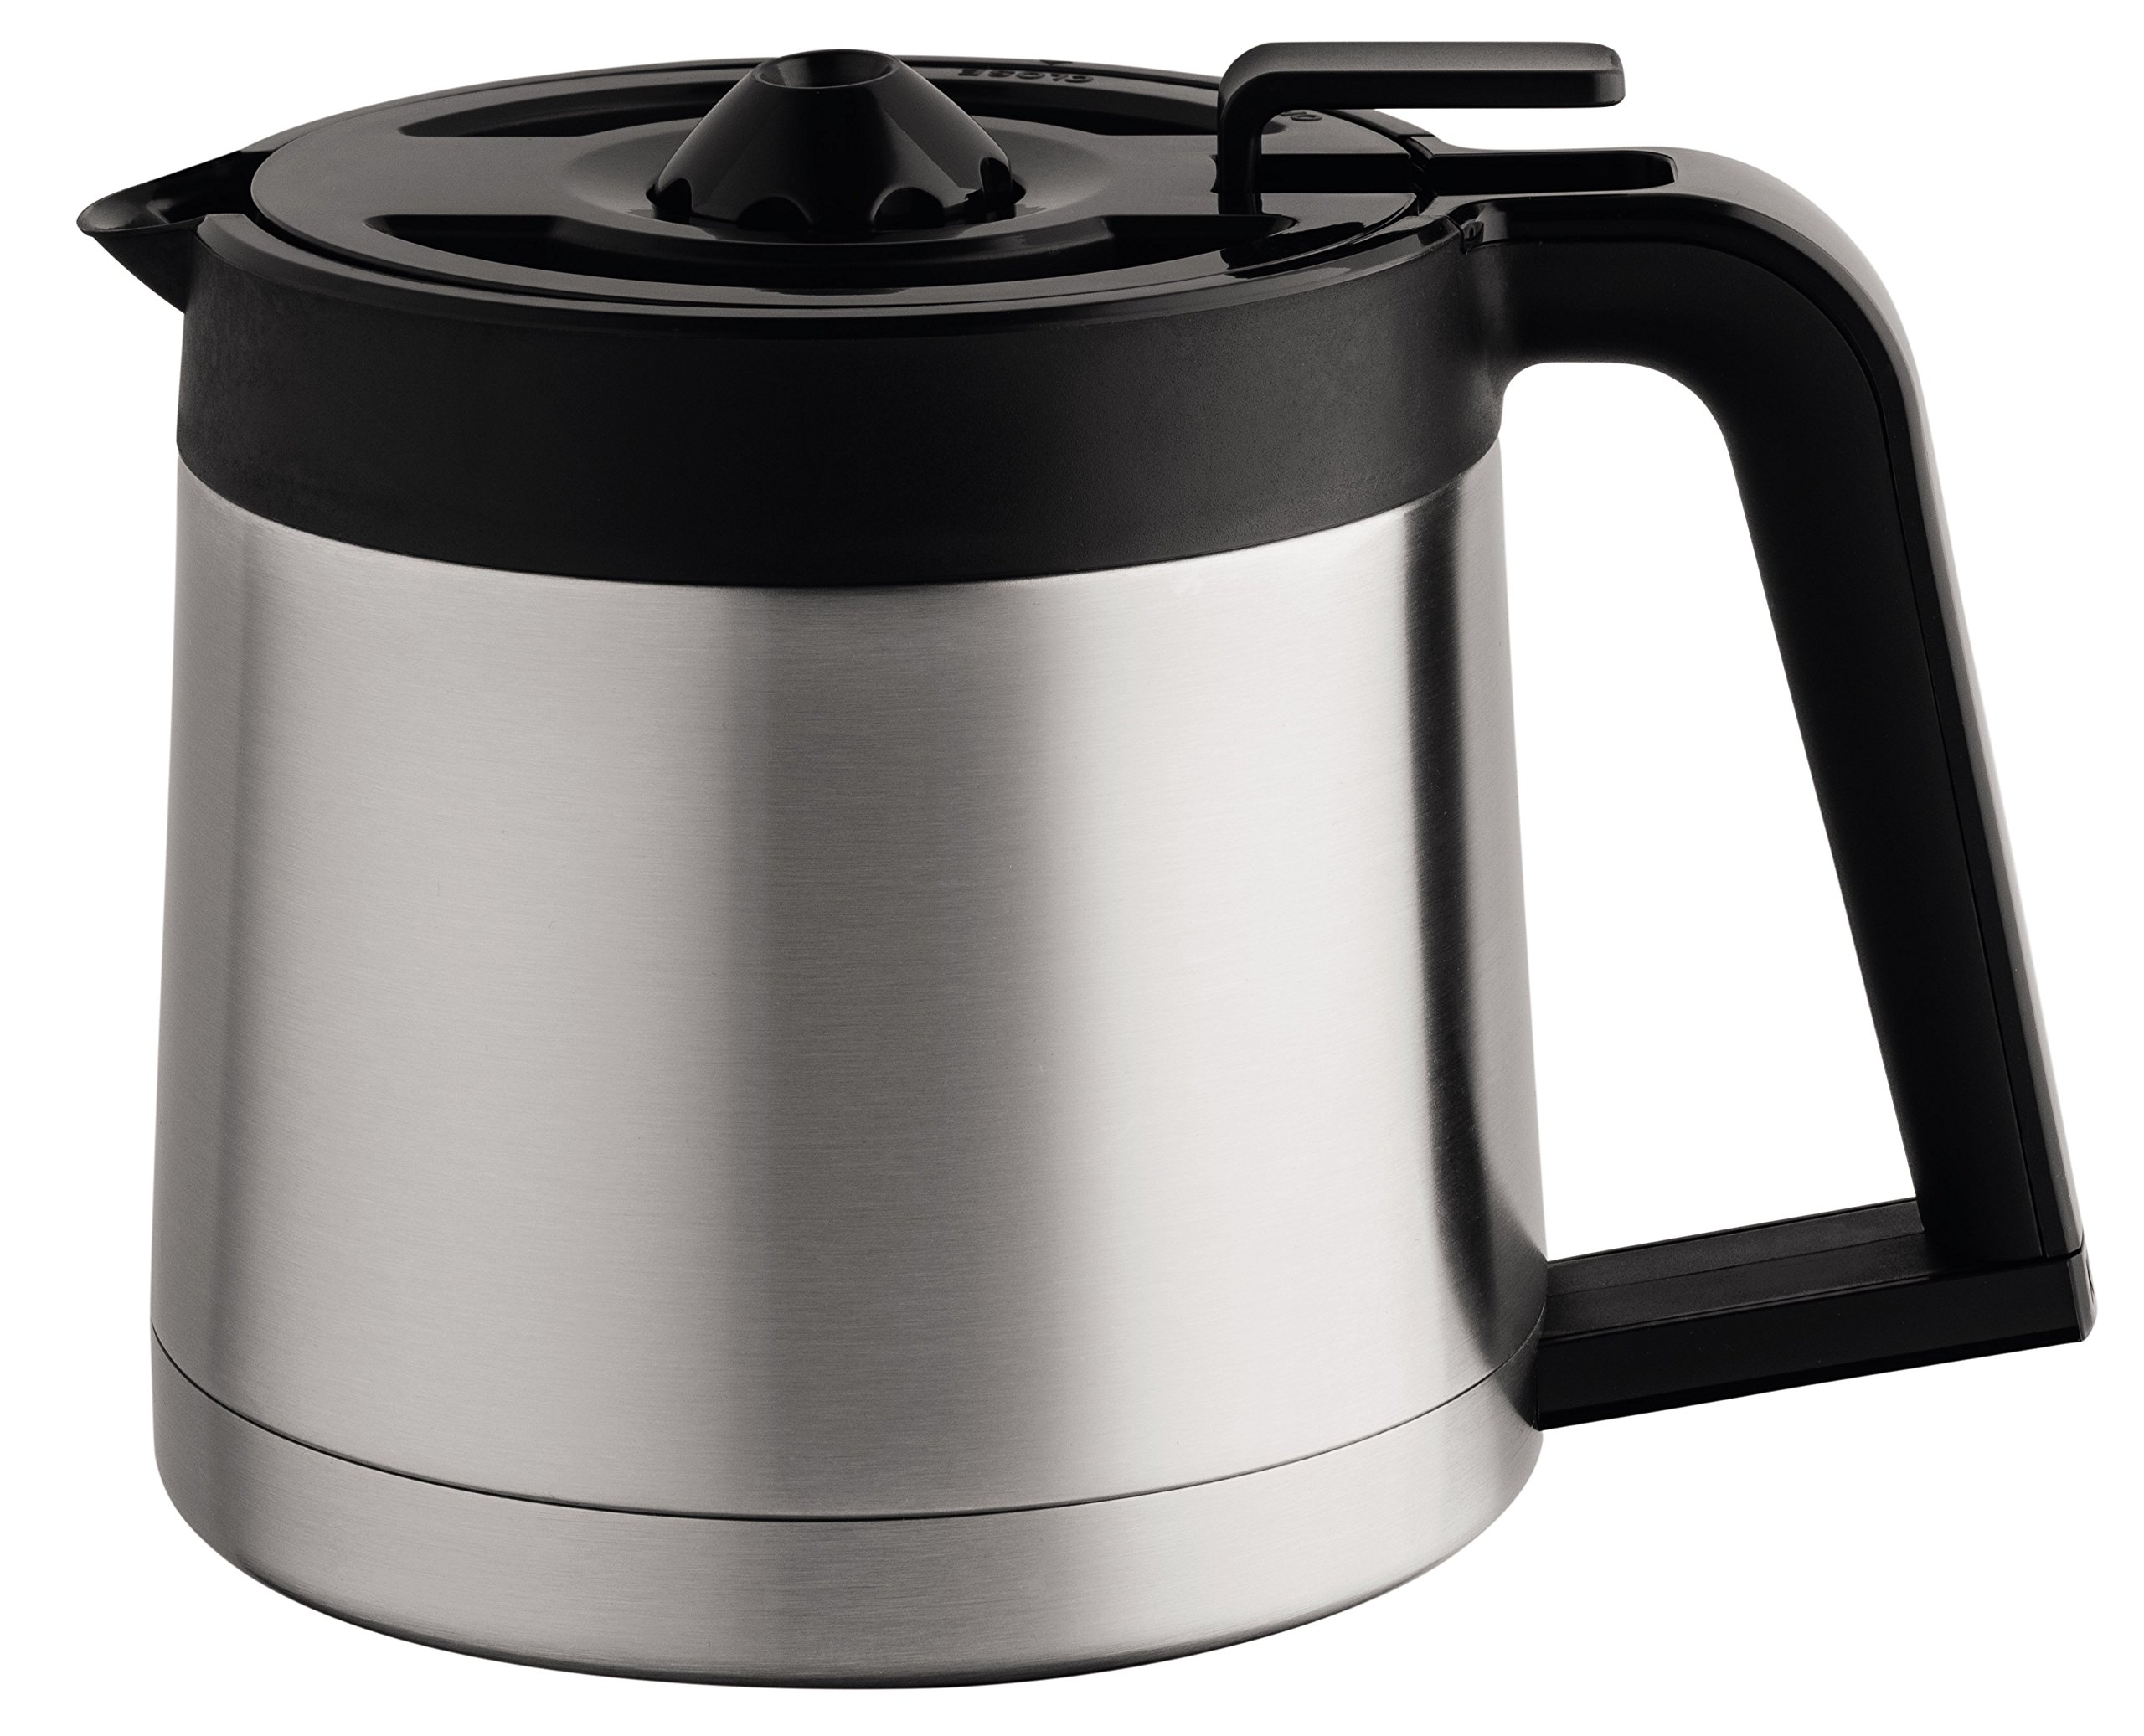 KRUPS XB1130 ET351 Replacement Thermal Coffee Carafe, 12 Cup, Silver by KRUPS